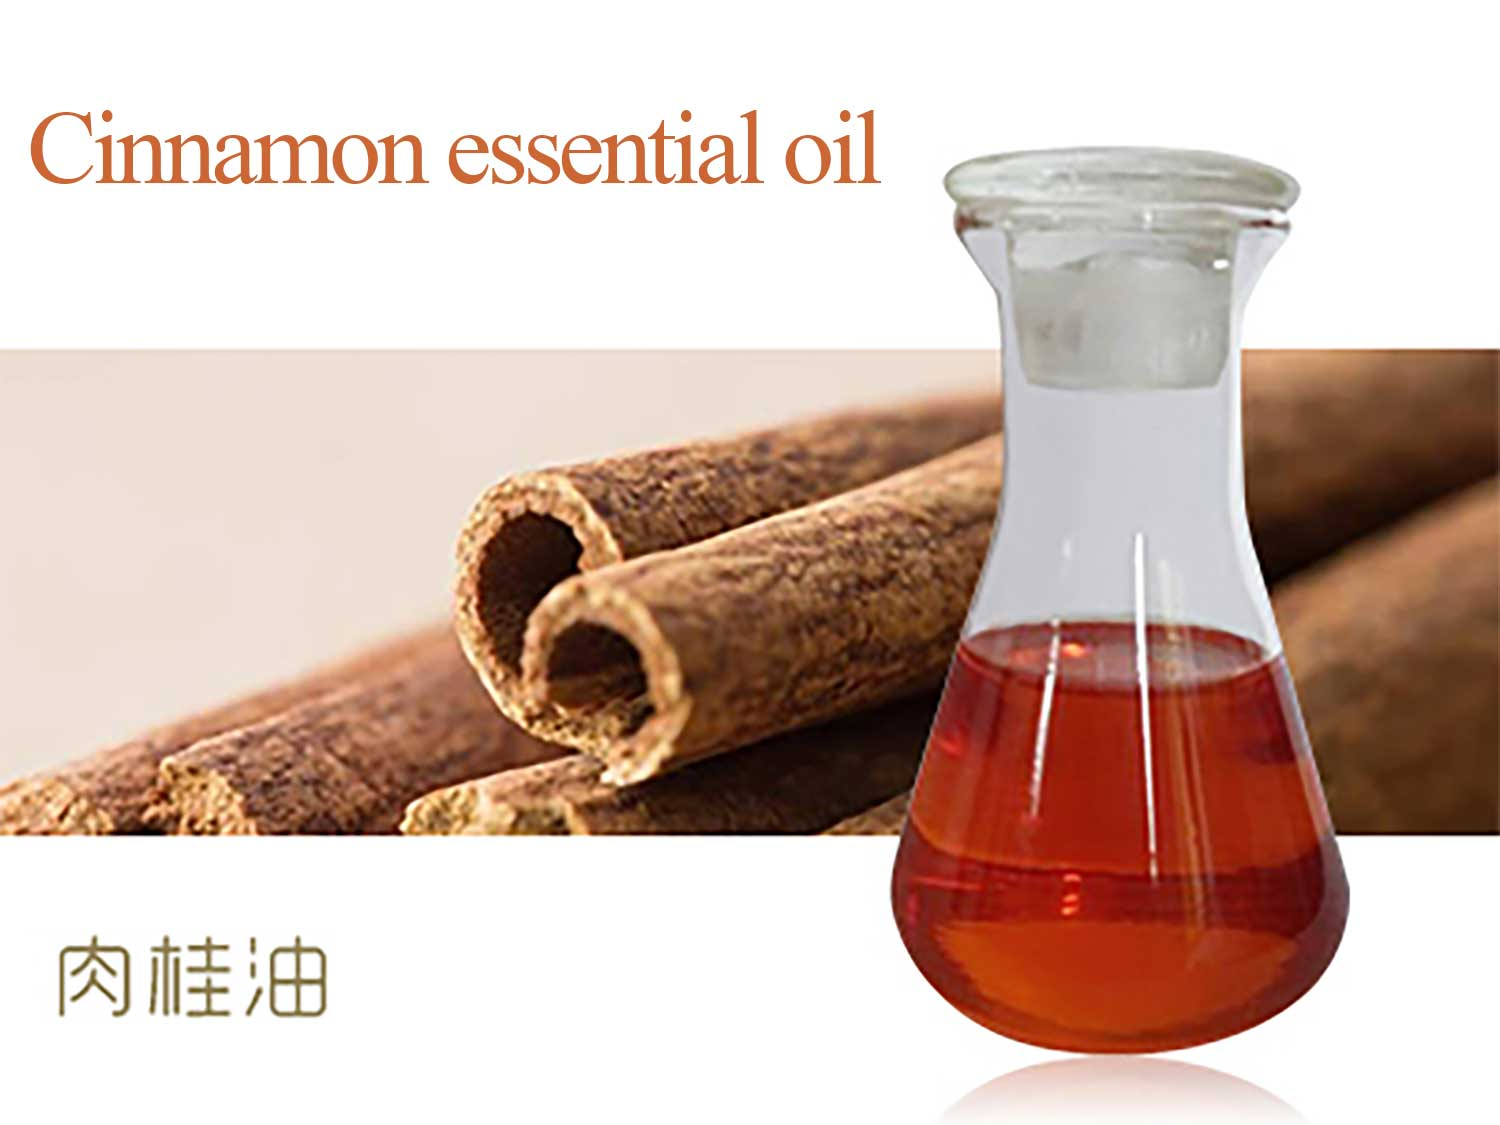 cinnamon essential oil of supercritical co2 extraction